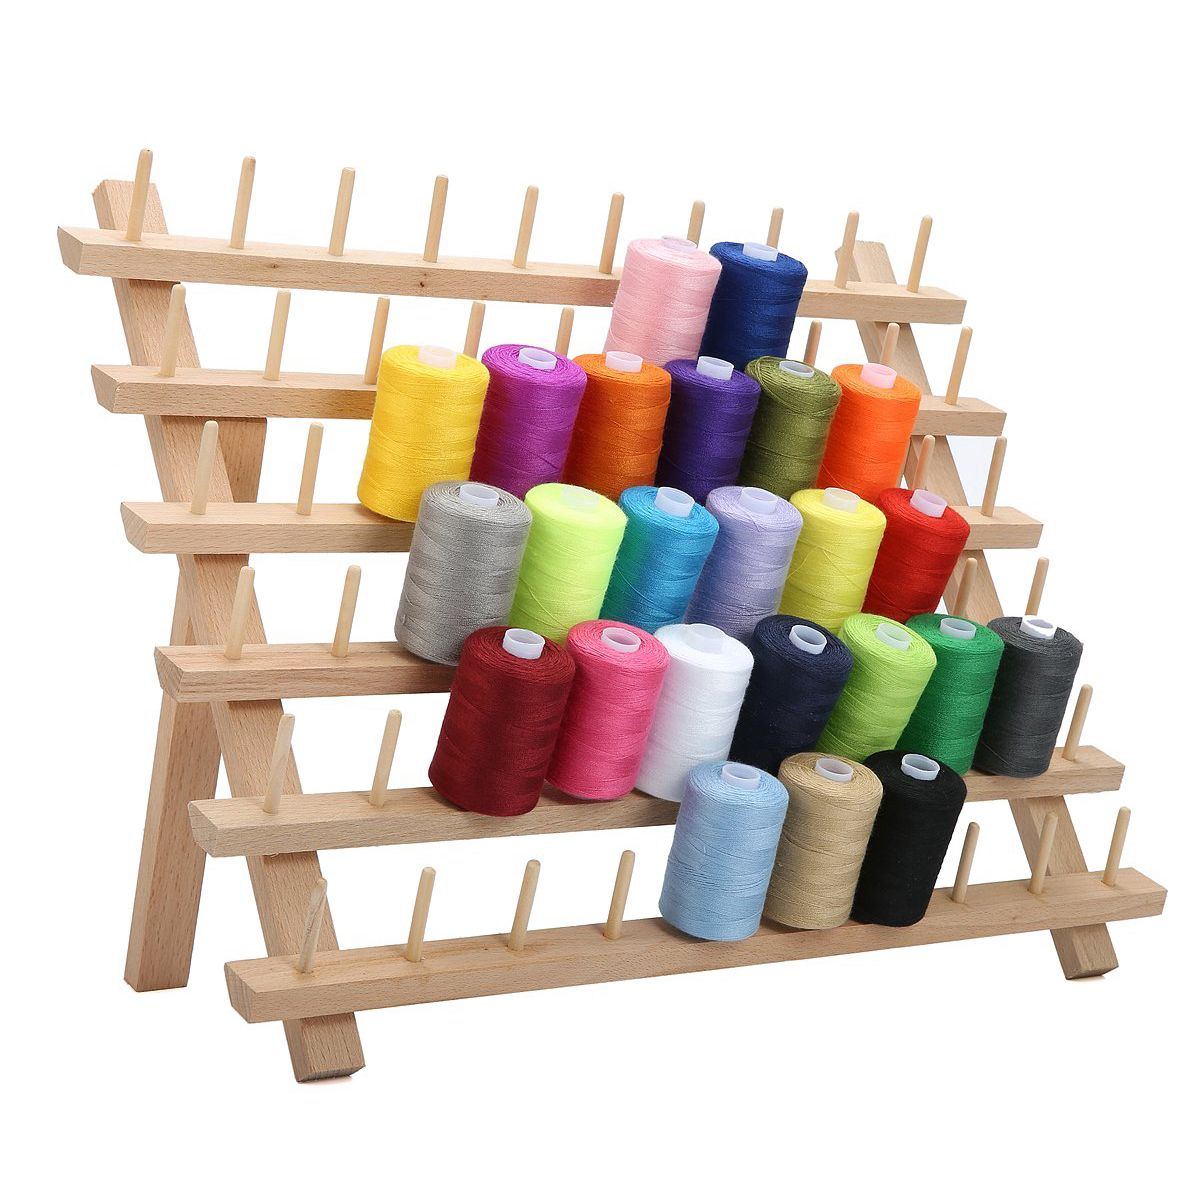 Quilting Embroidery Hair-braiding 60 Spool Sewing Embroidery Thread Holder Organizer for Sewing SOONHUA Wooden Thread Rack